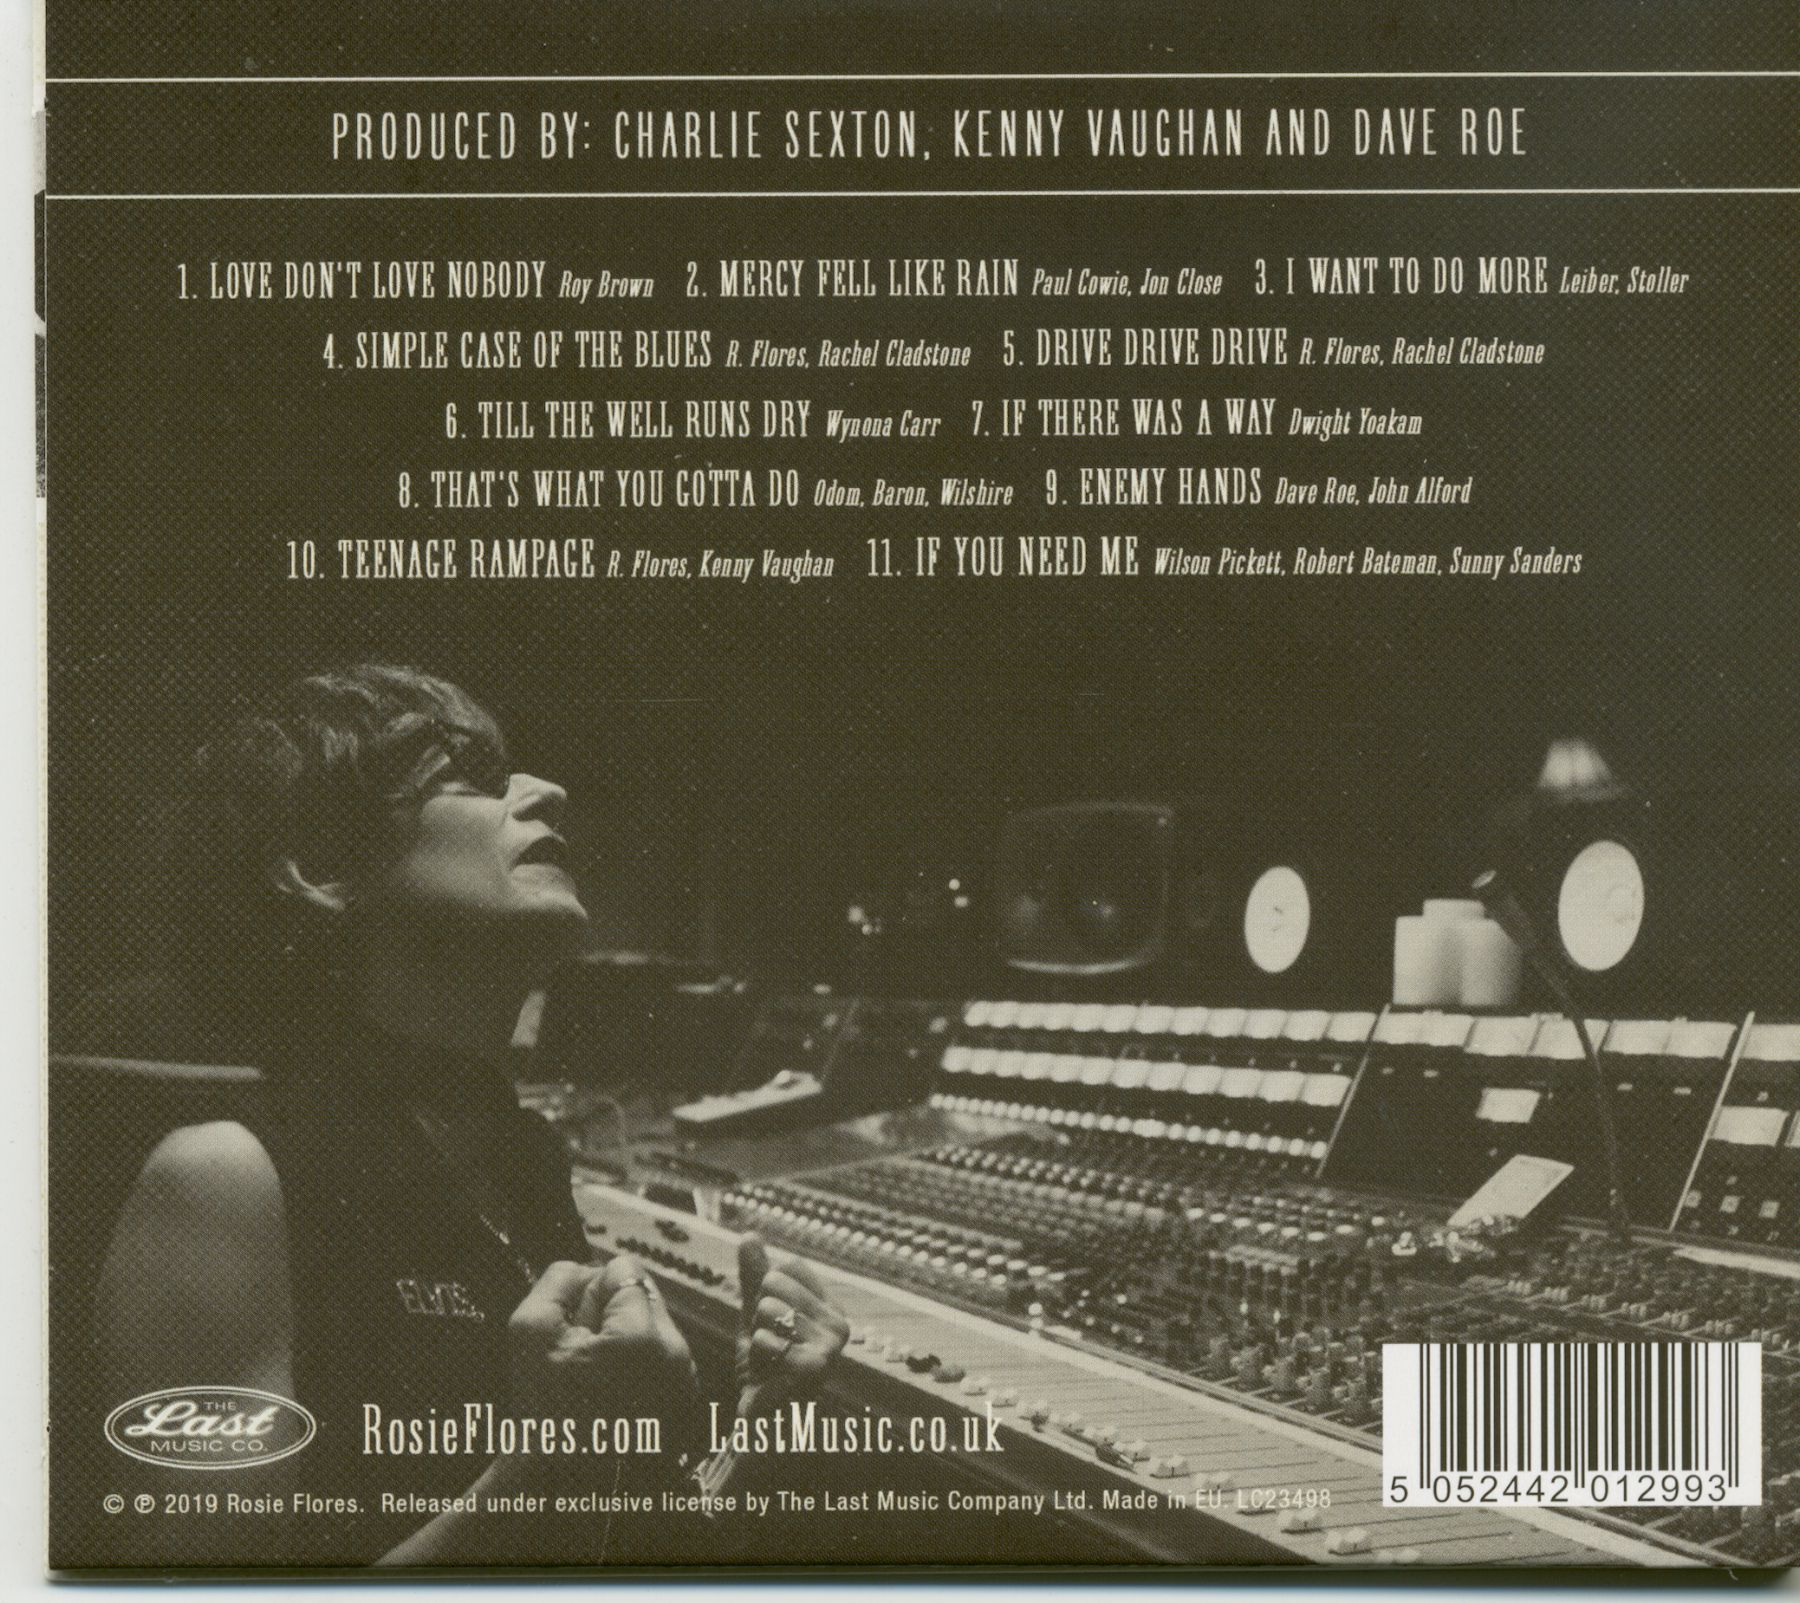 Rosie Flores Simple Case Of The Blues (CD)